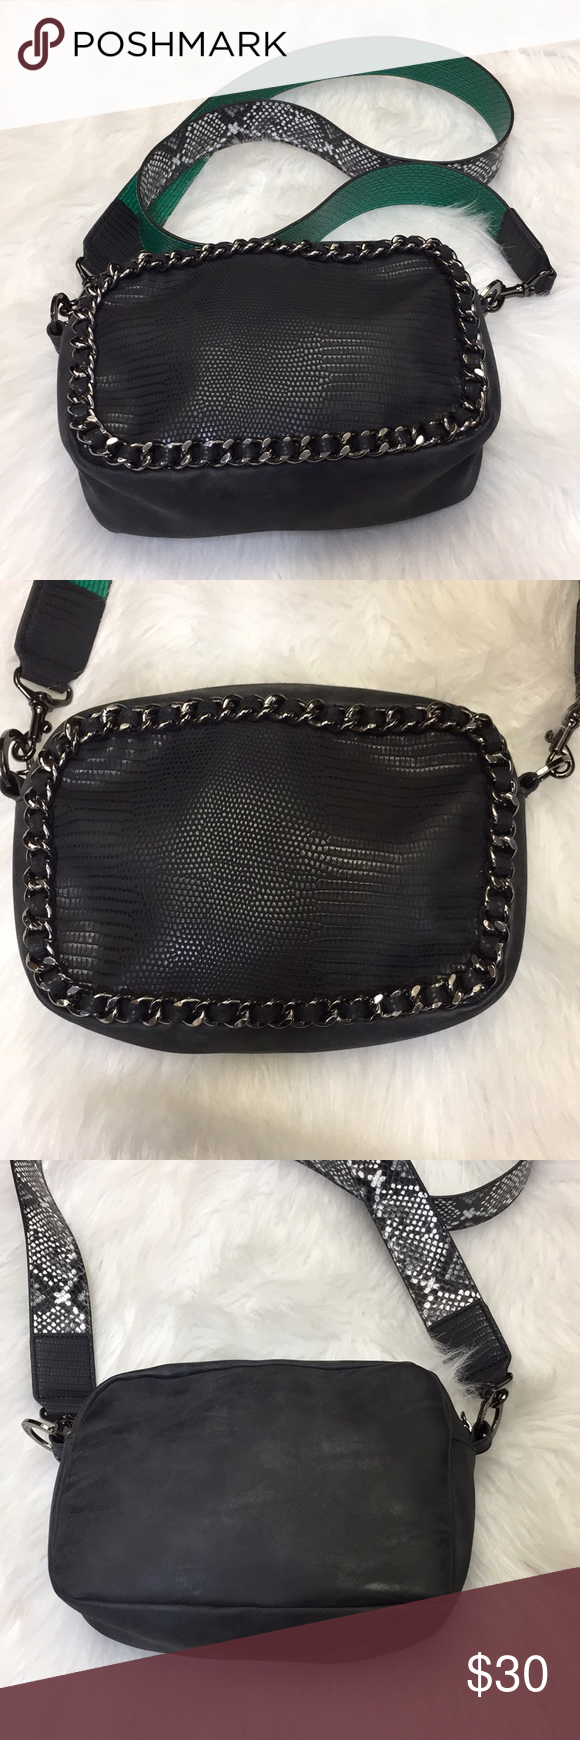 ES2242A Quilted Turn-Lock Chain Cross Body Shoulder Bag Green